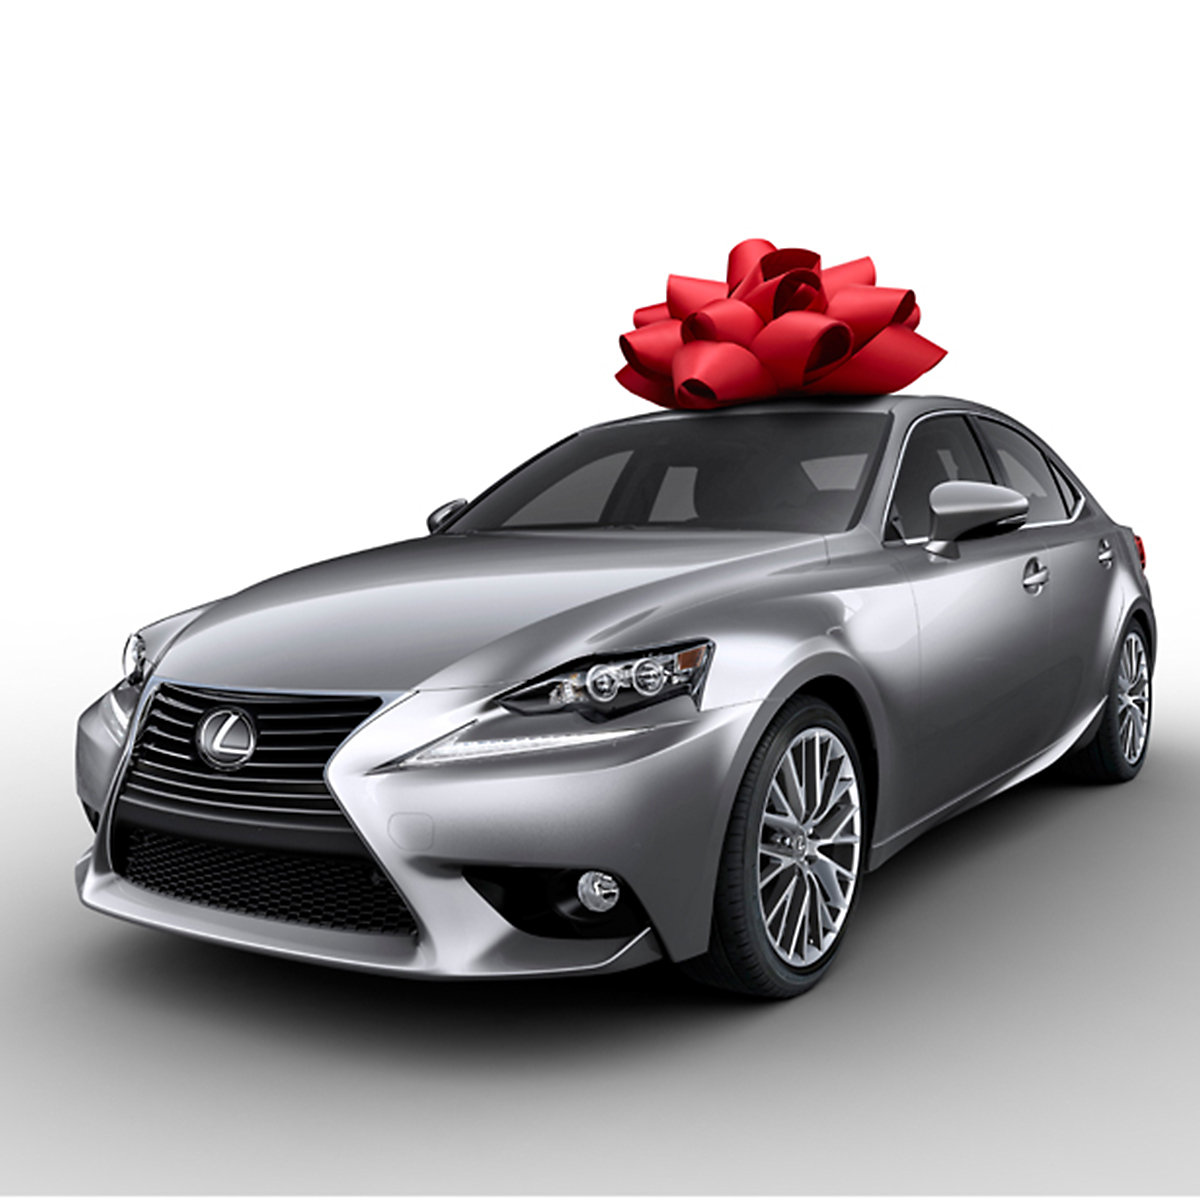 The End Of The Year Is Fast Approaching, And If Youu0027re Looking For Gift  Ideas For The Lexus Enthusiast In Your Life, JM Lexus Has Just The List For  You.*